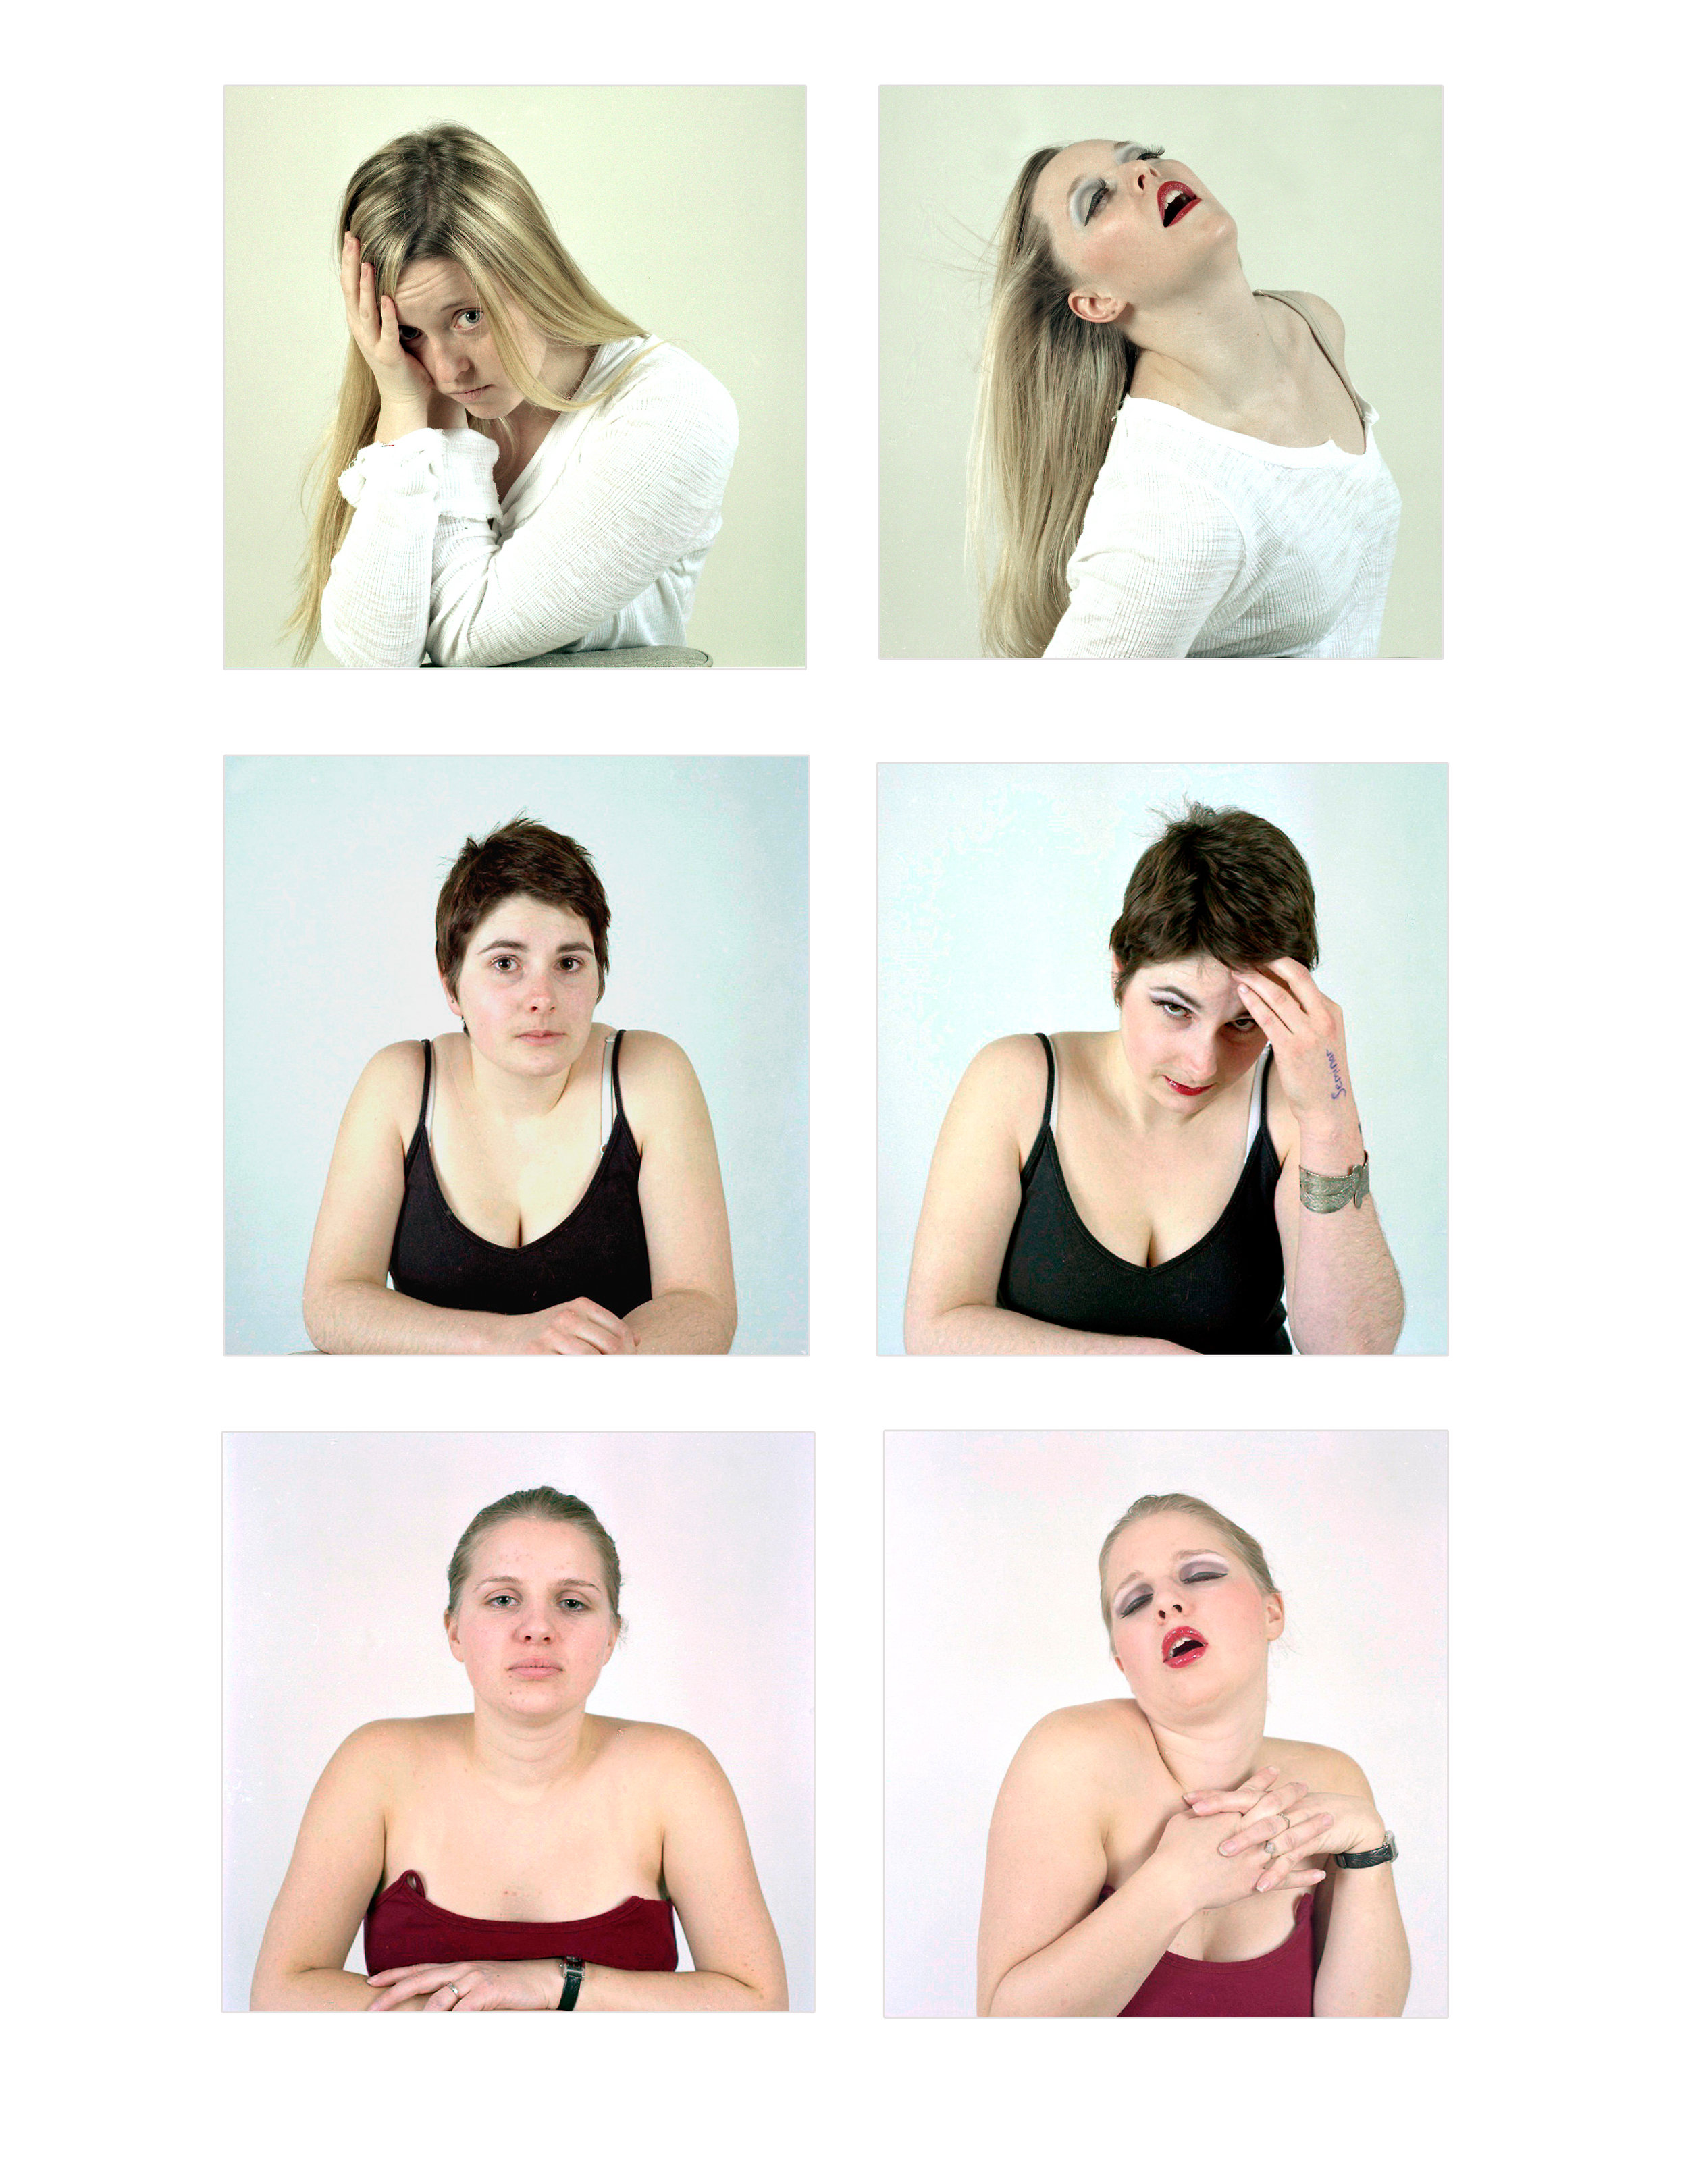 With and Without Makeup Series 2. Chromogenic Colour prints. 2008.